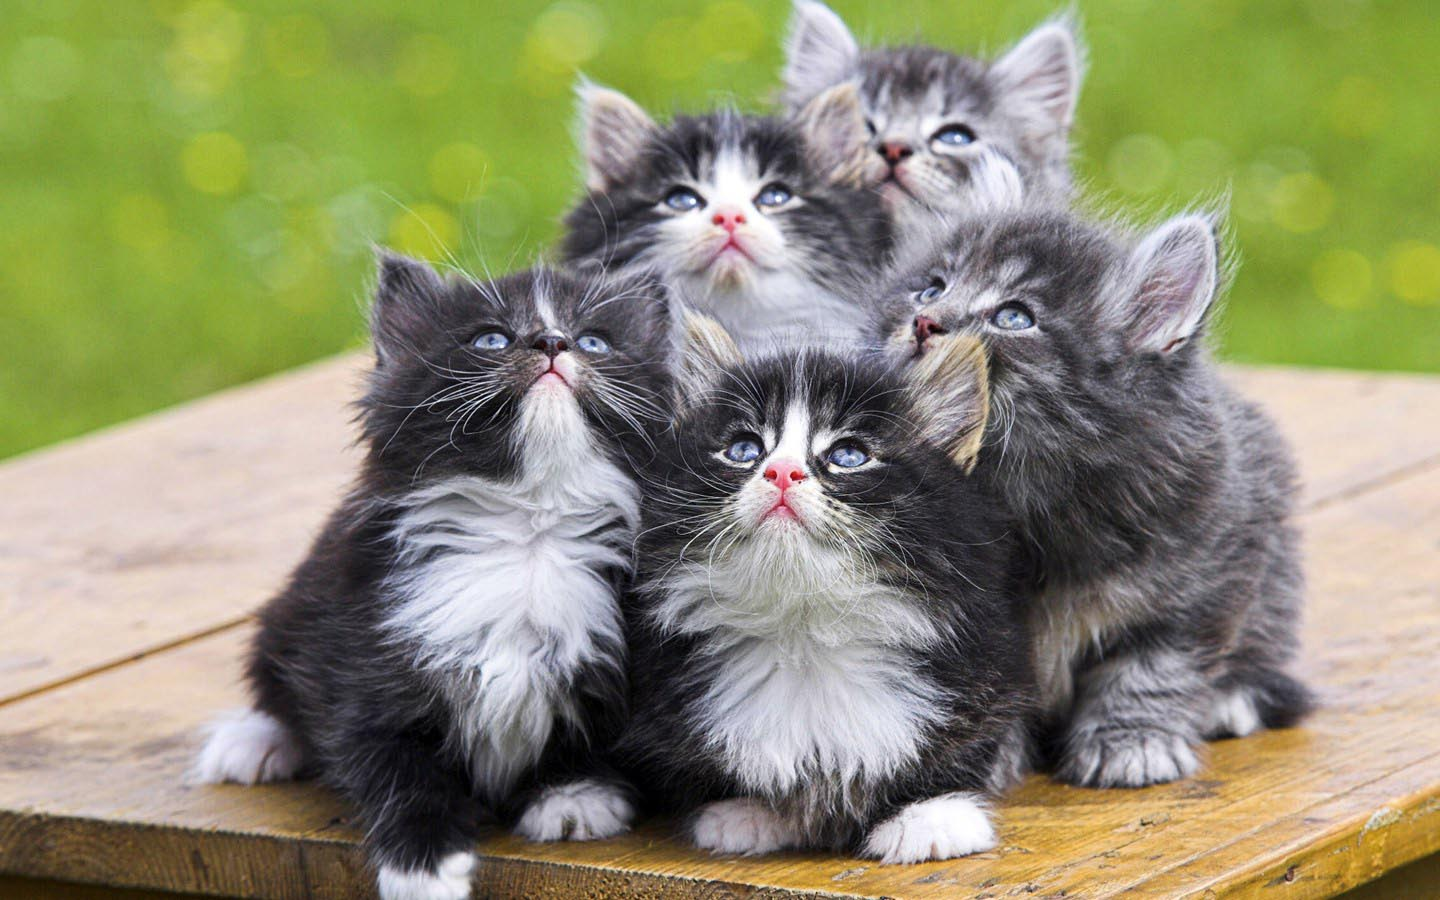 Cute Cats and kittens wallpapers